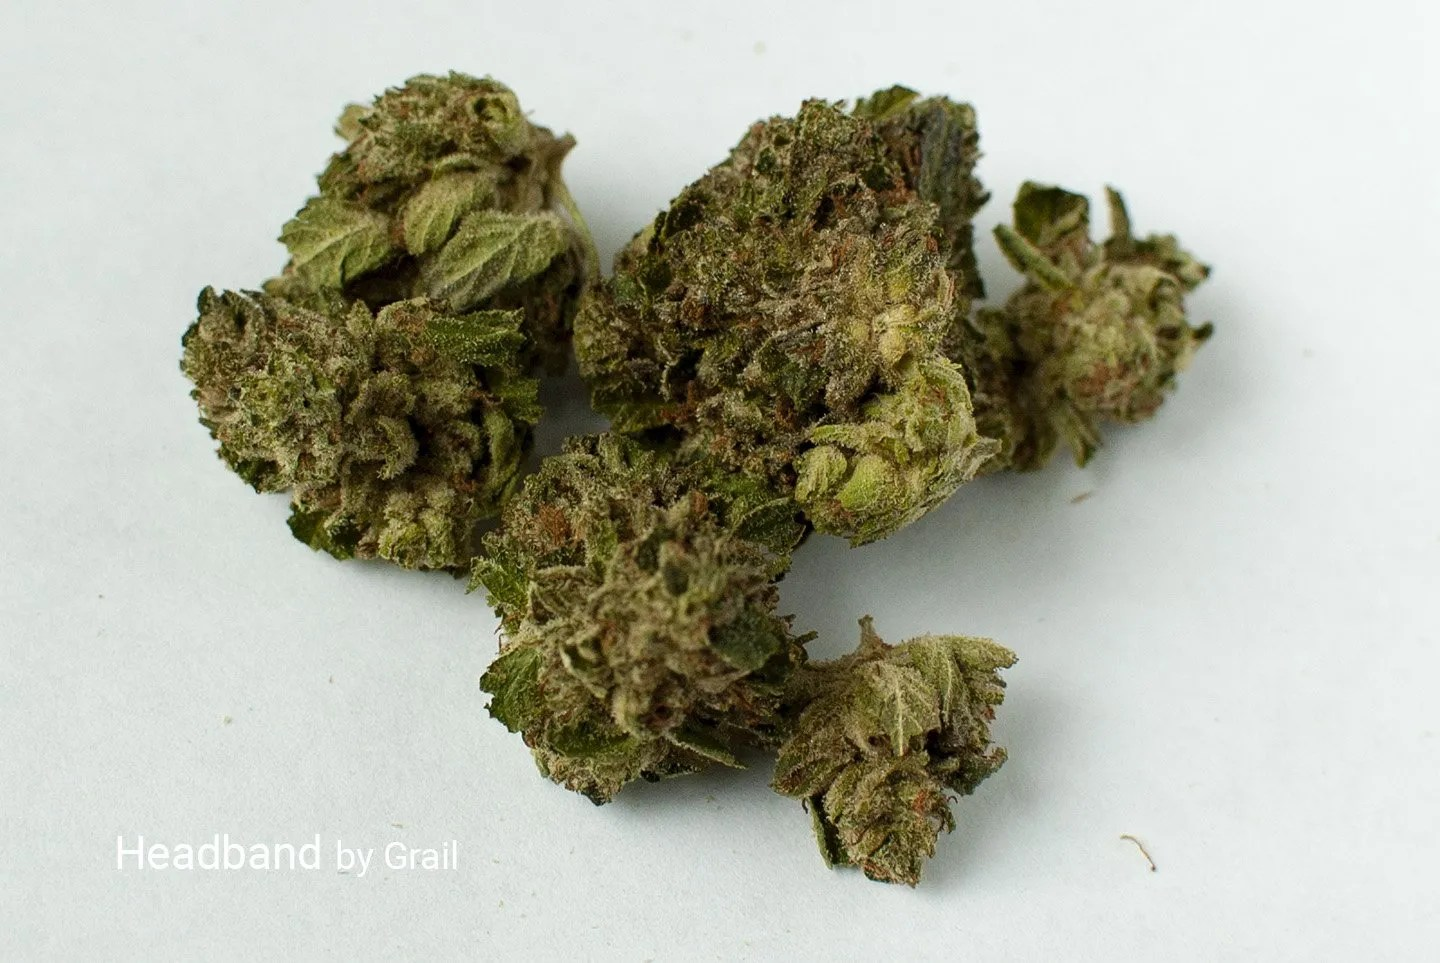 Sativa strain of headband